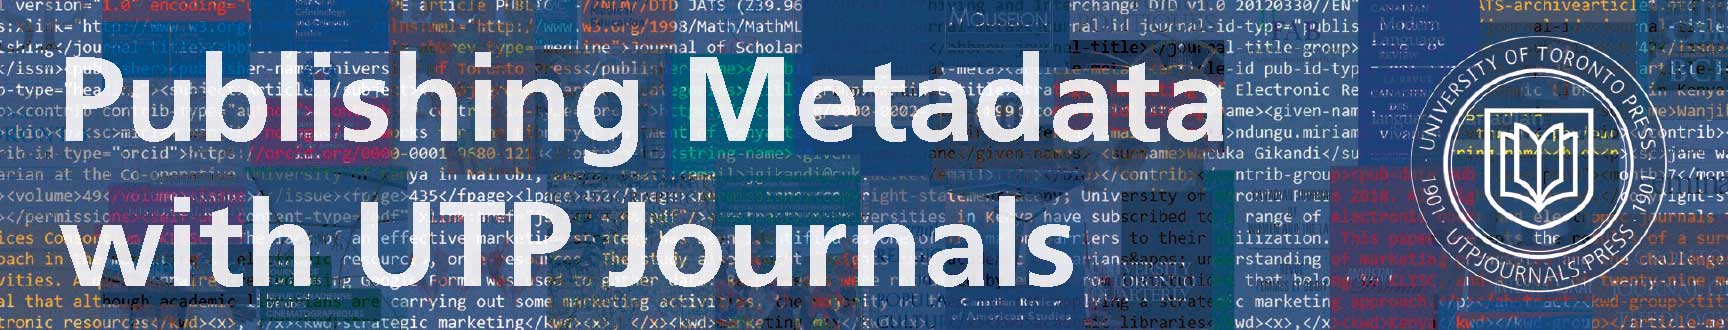 XML Code over Journal Covers